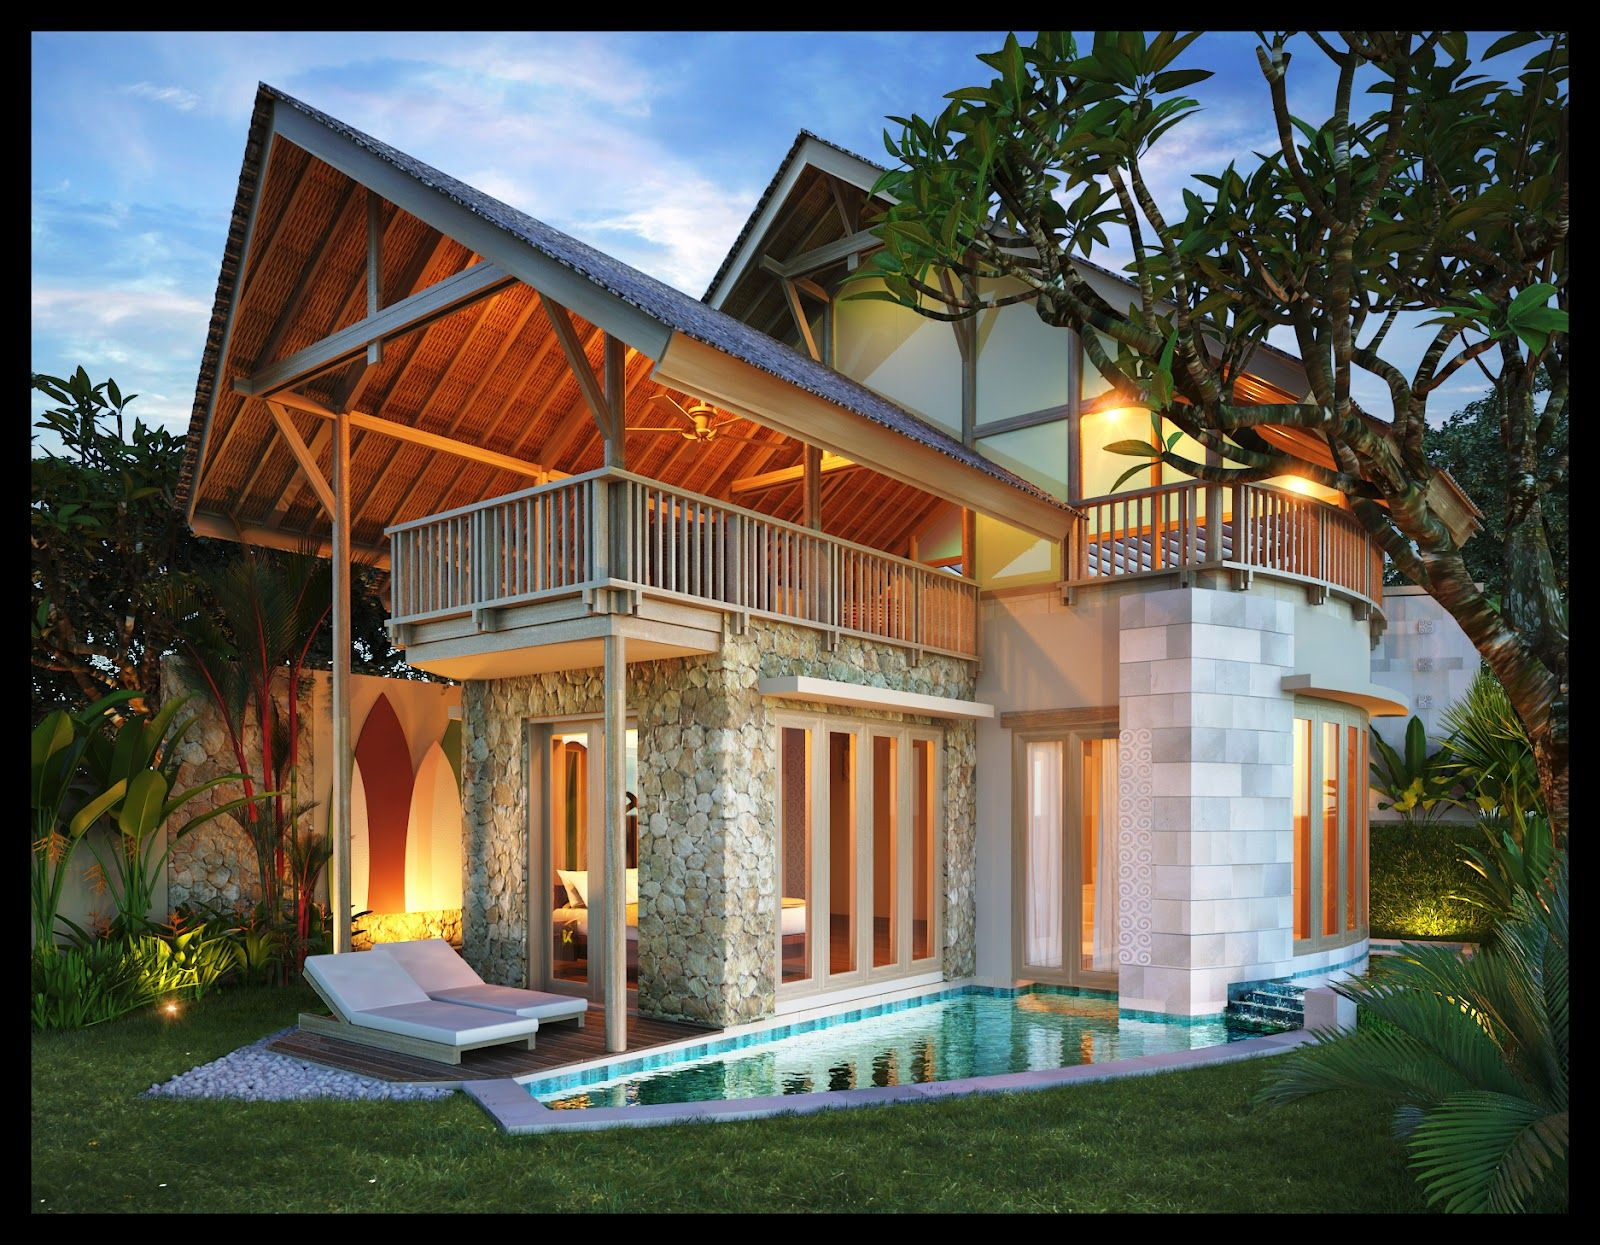 Bali house google search also ideas for the pinterest rh br